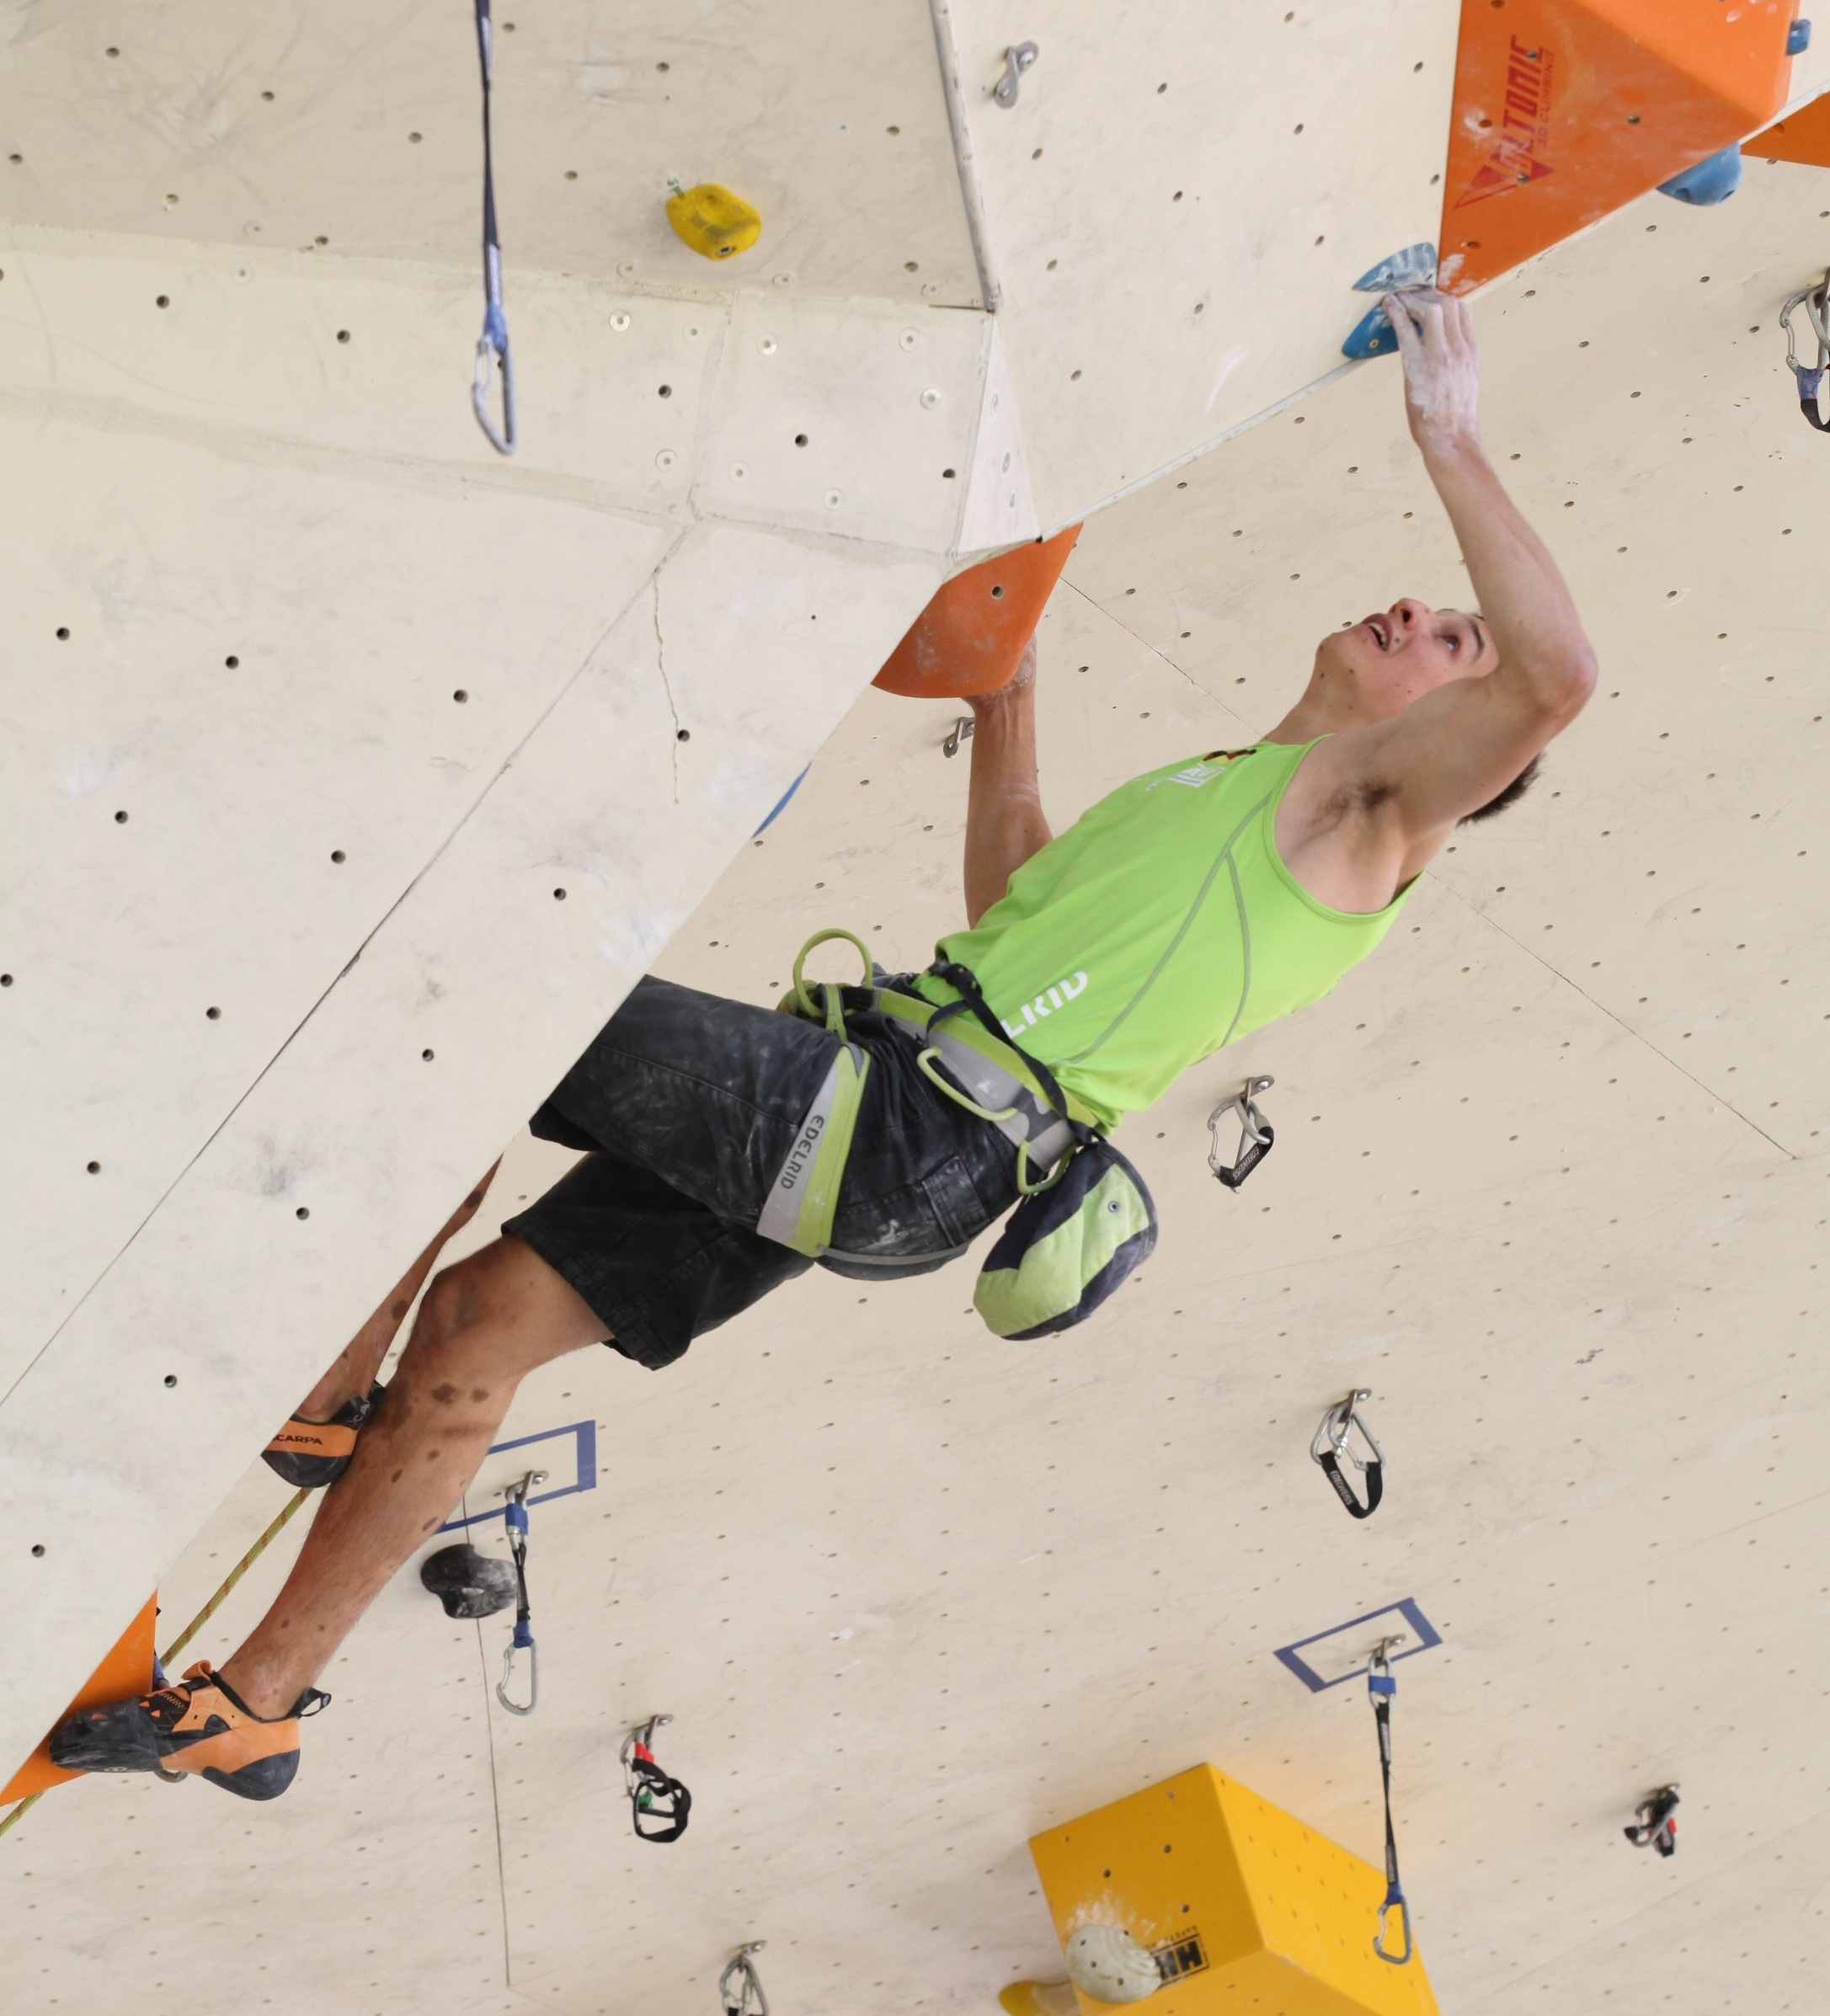 David is fighting in the final route - Pic by Heiner Schmiedl